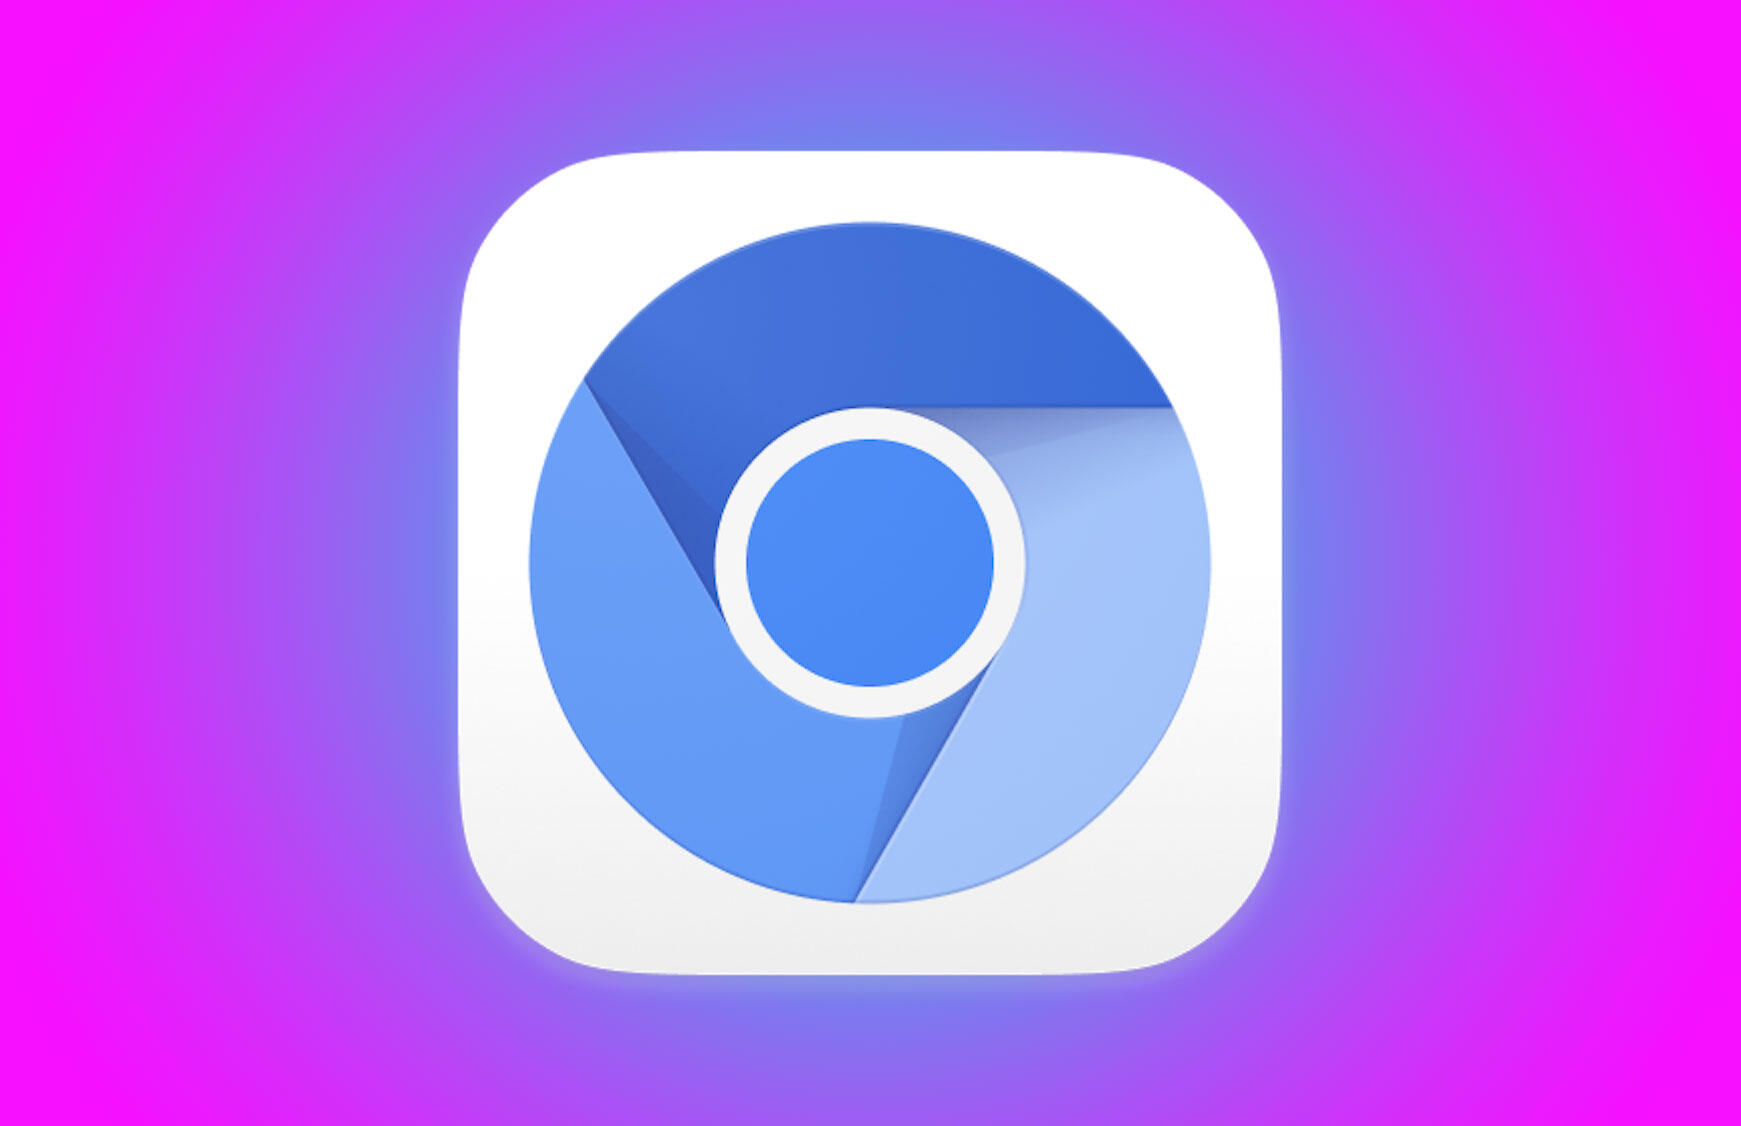 Google's open-source Chromium project is the foundation for Chrome and several other companies' browsers.